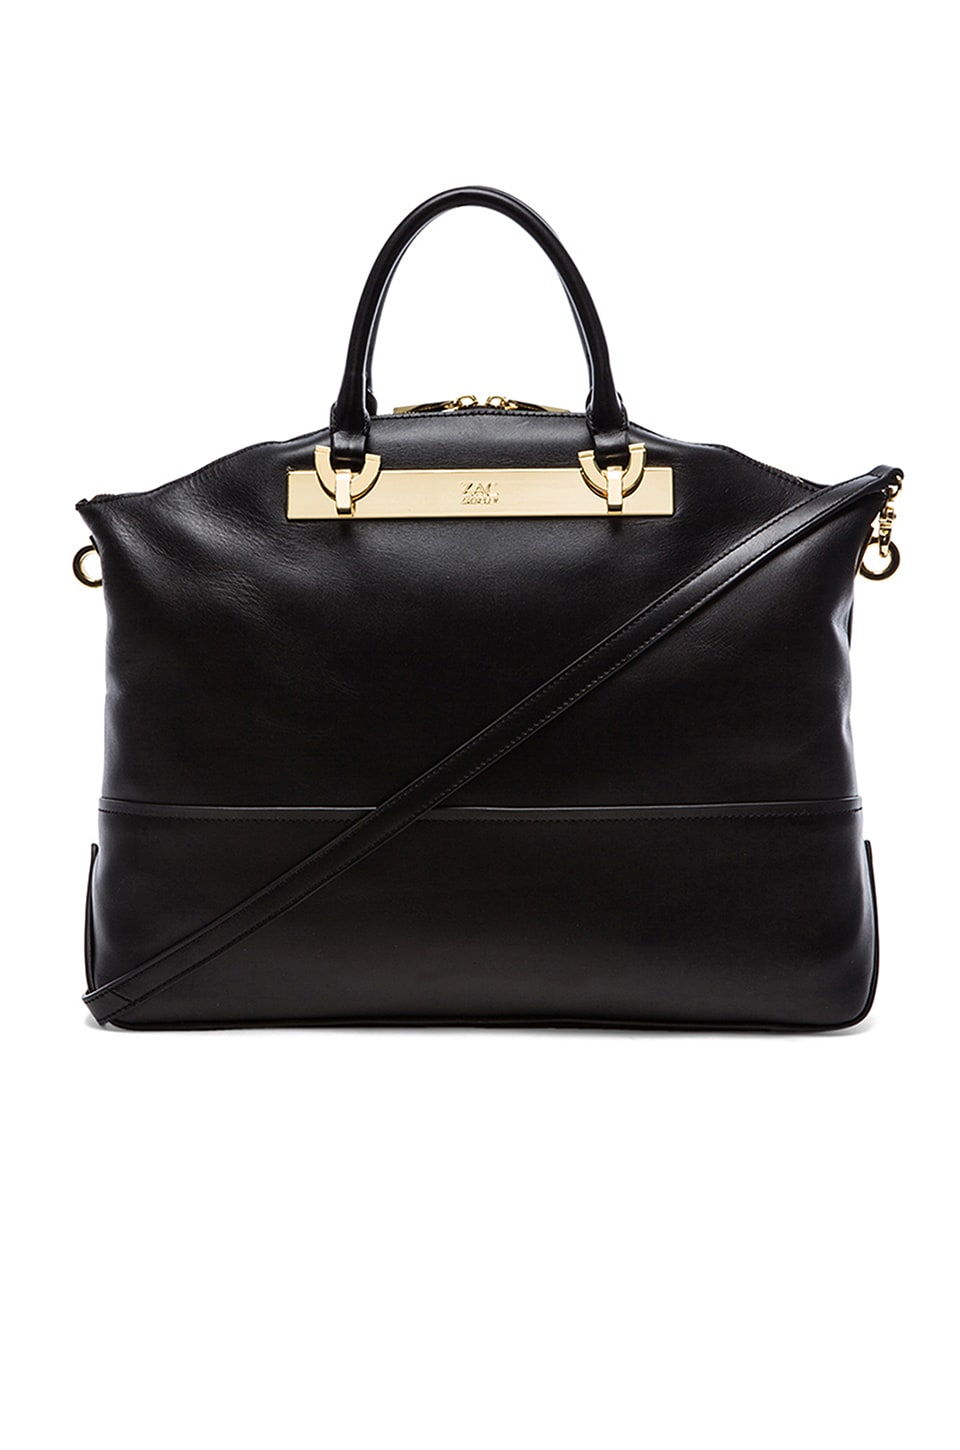 Zac Zac Posen Eartha Envelope Dome Satchel in Black